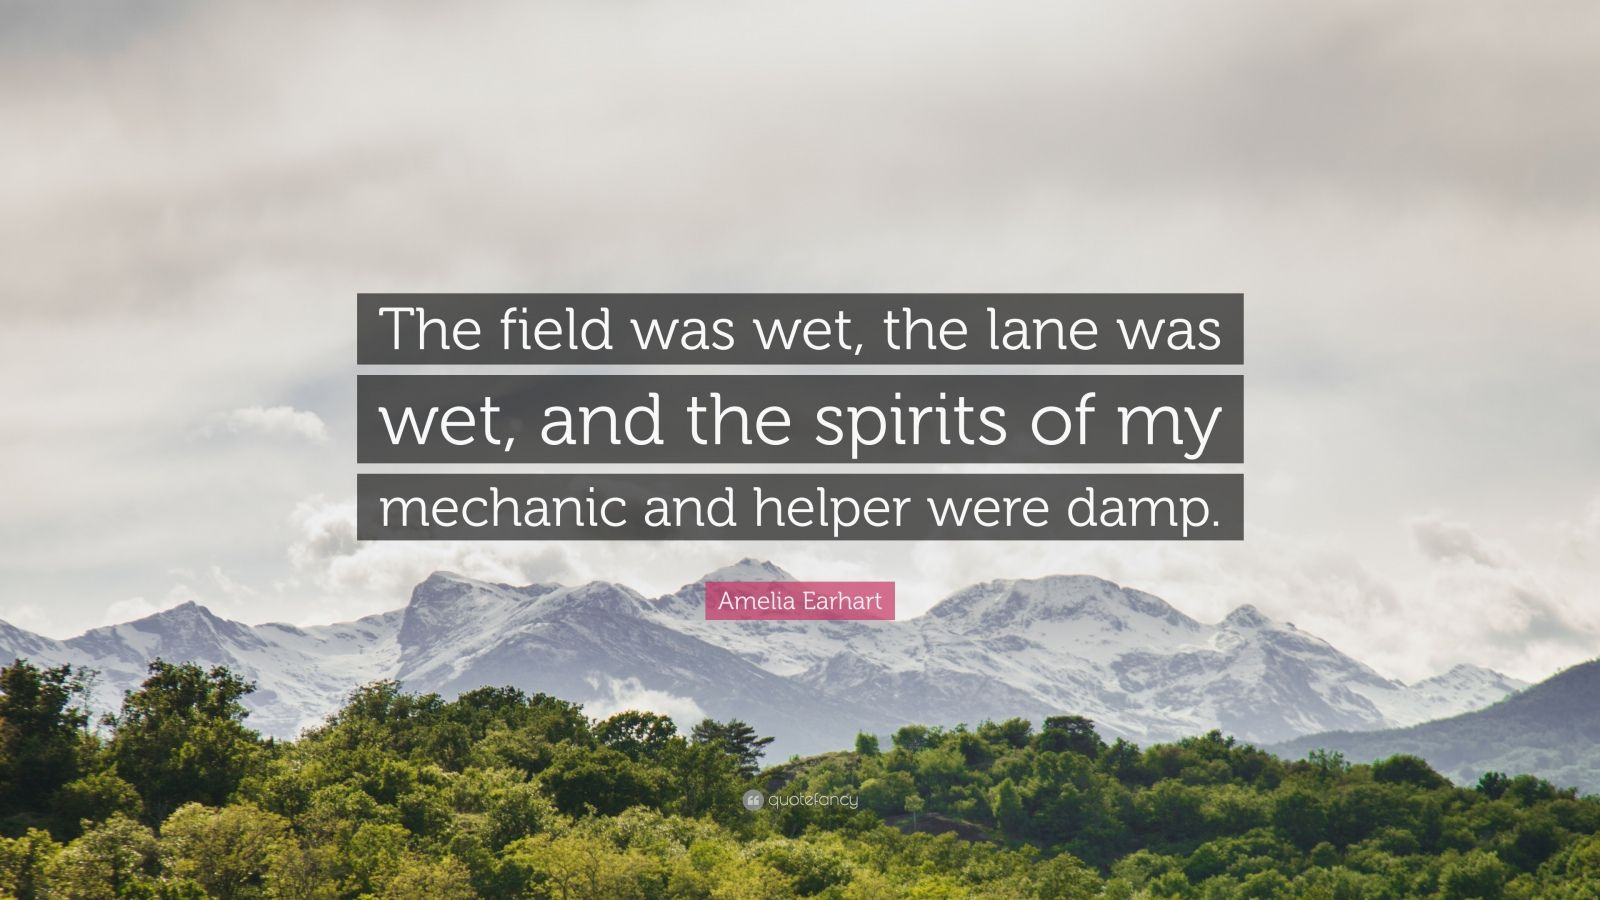 """Amelia Earhart Quote: """"The field was wet, the lane was wet, and the spirits of my mechanic and helper were damp."""""""